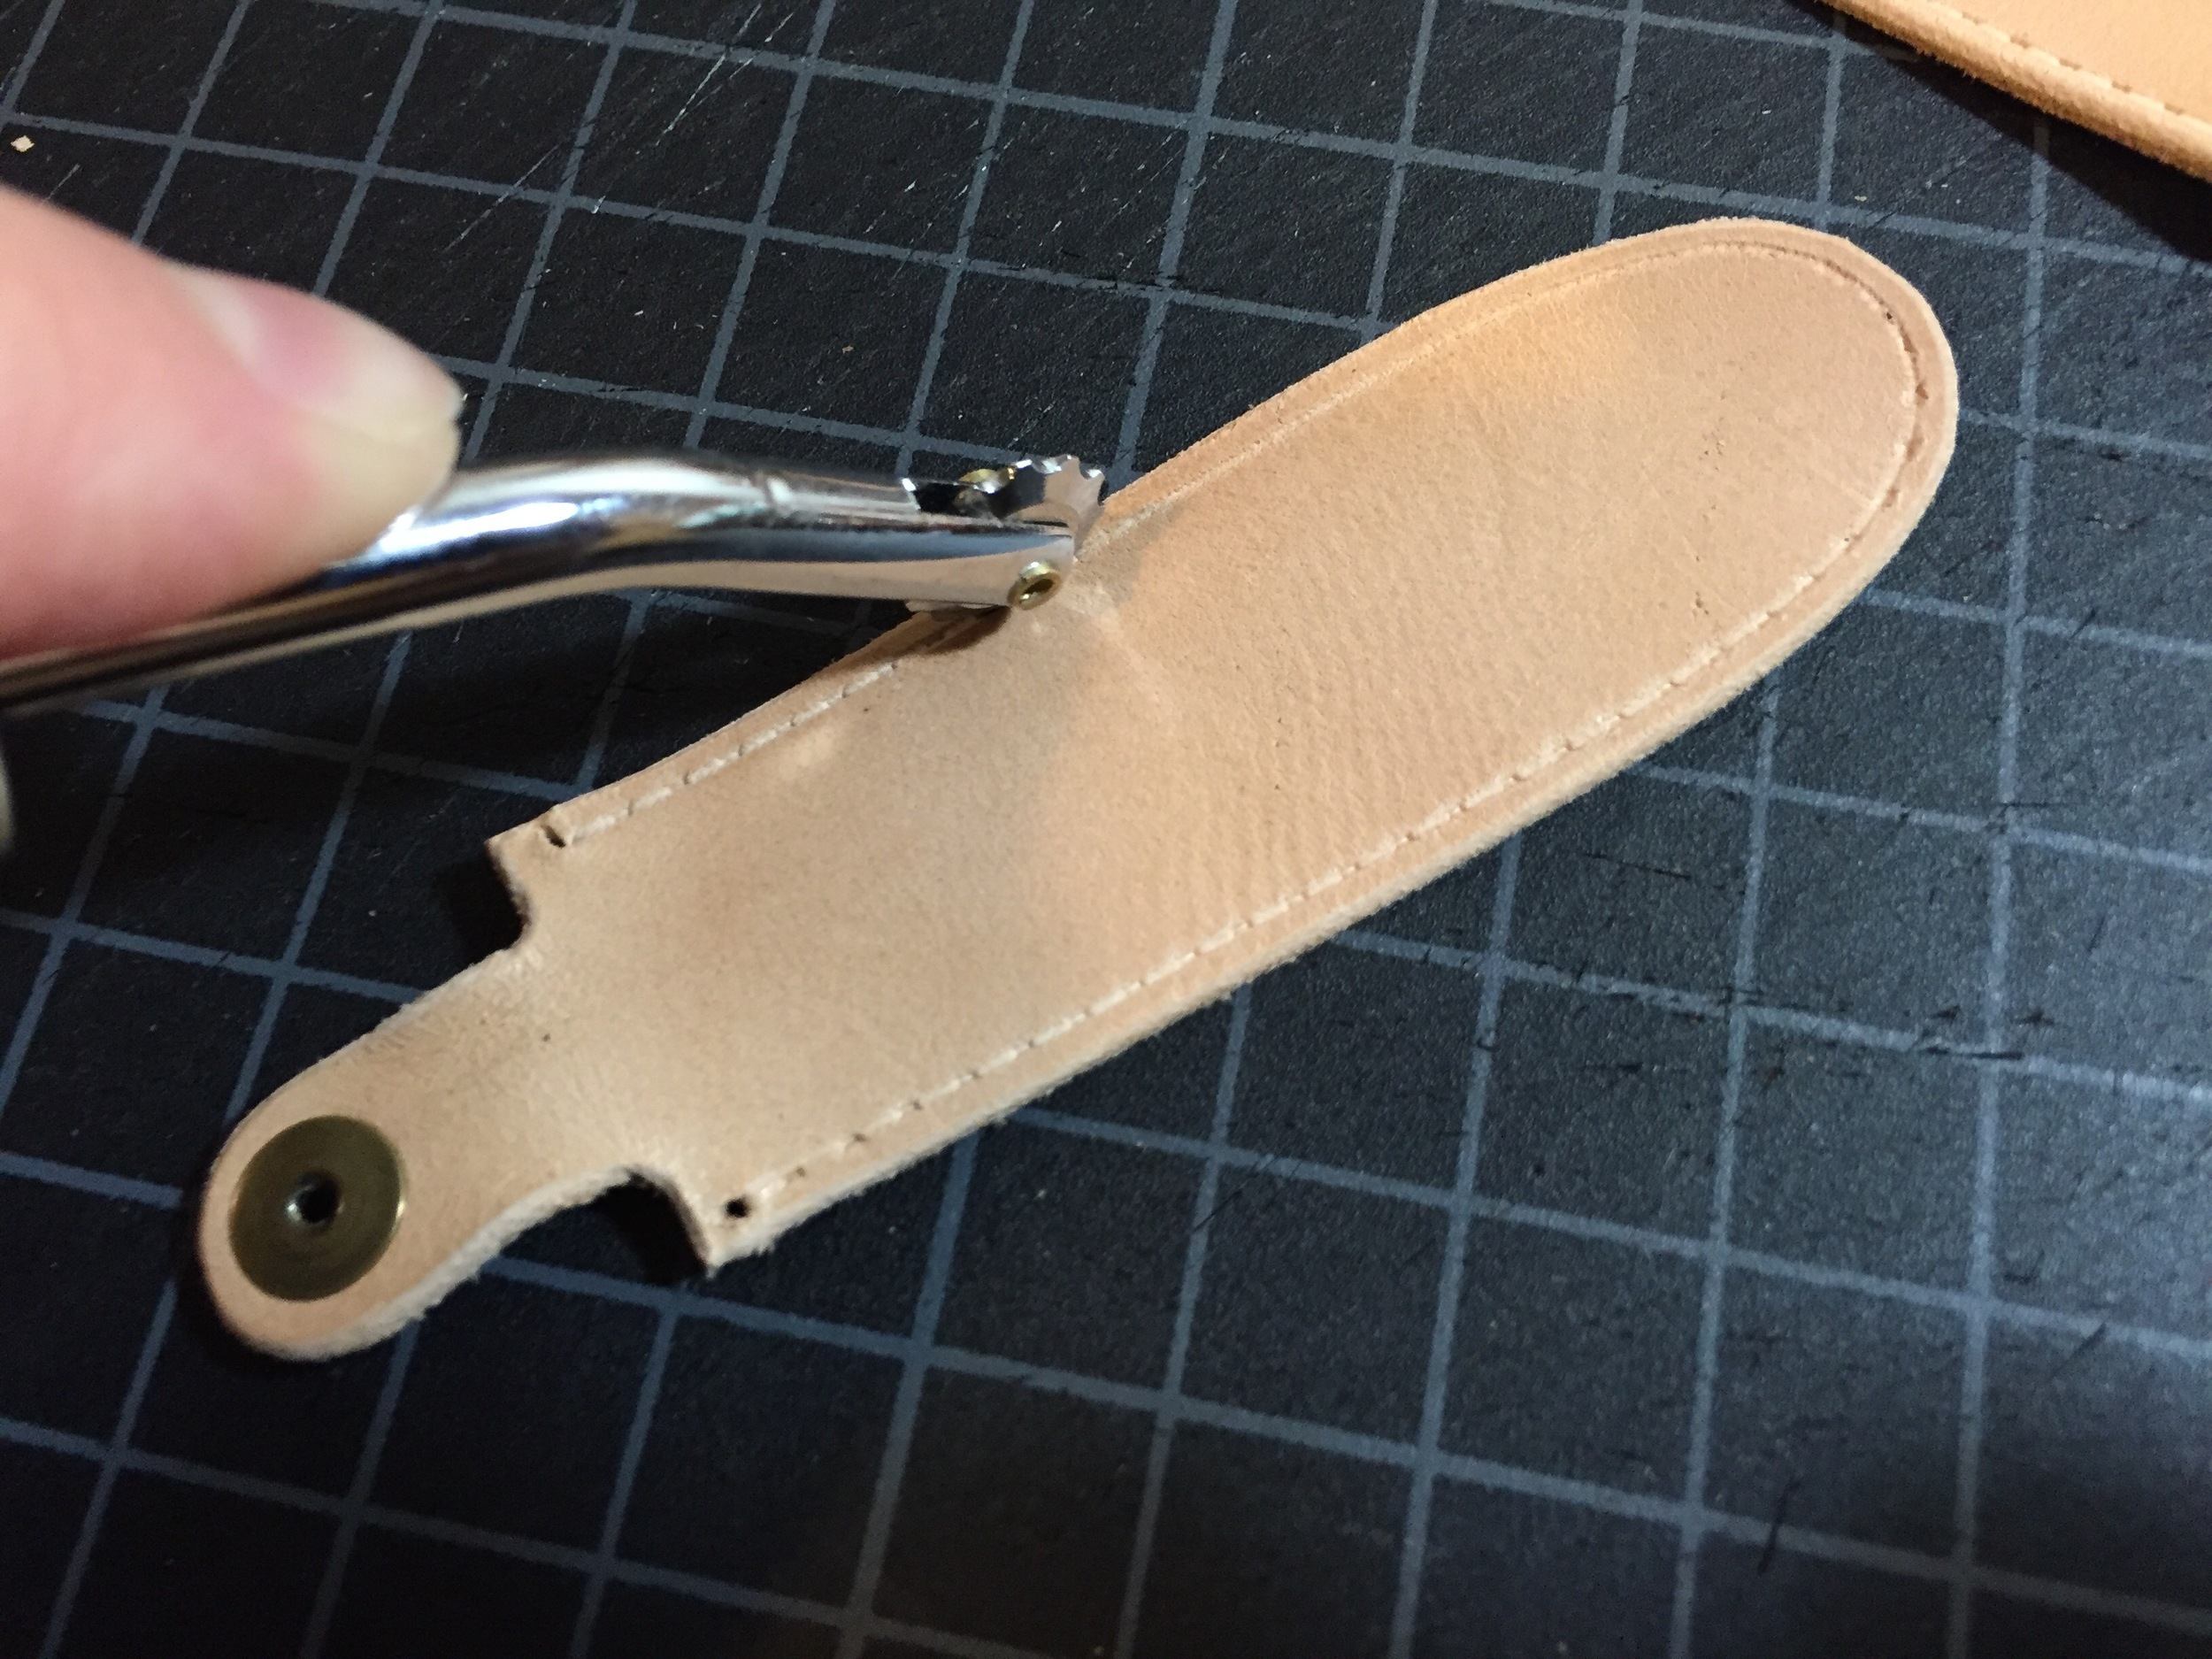 Using the marking wheel. I don't normally use this tool, but it worked well to mark the stitches around the curve.